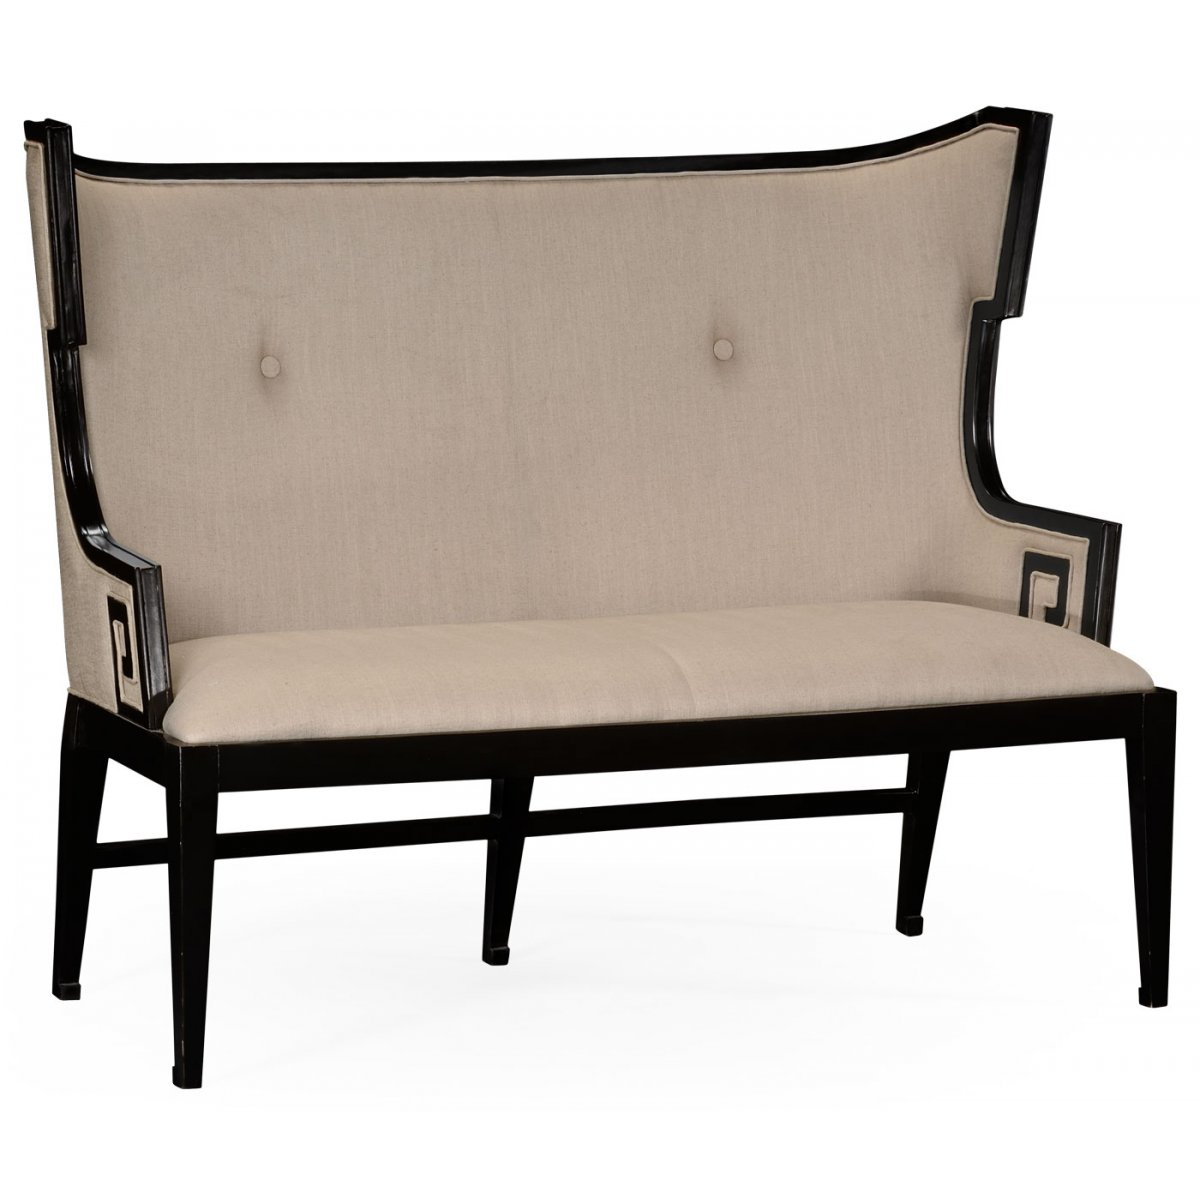 Upholstered dining bench settee swanky interiors for Dining room upholstered bench